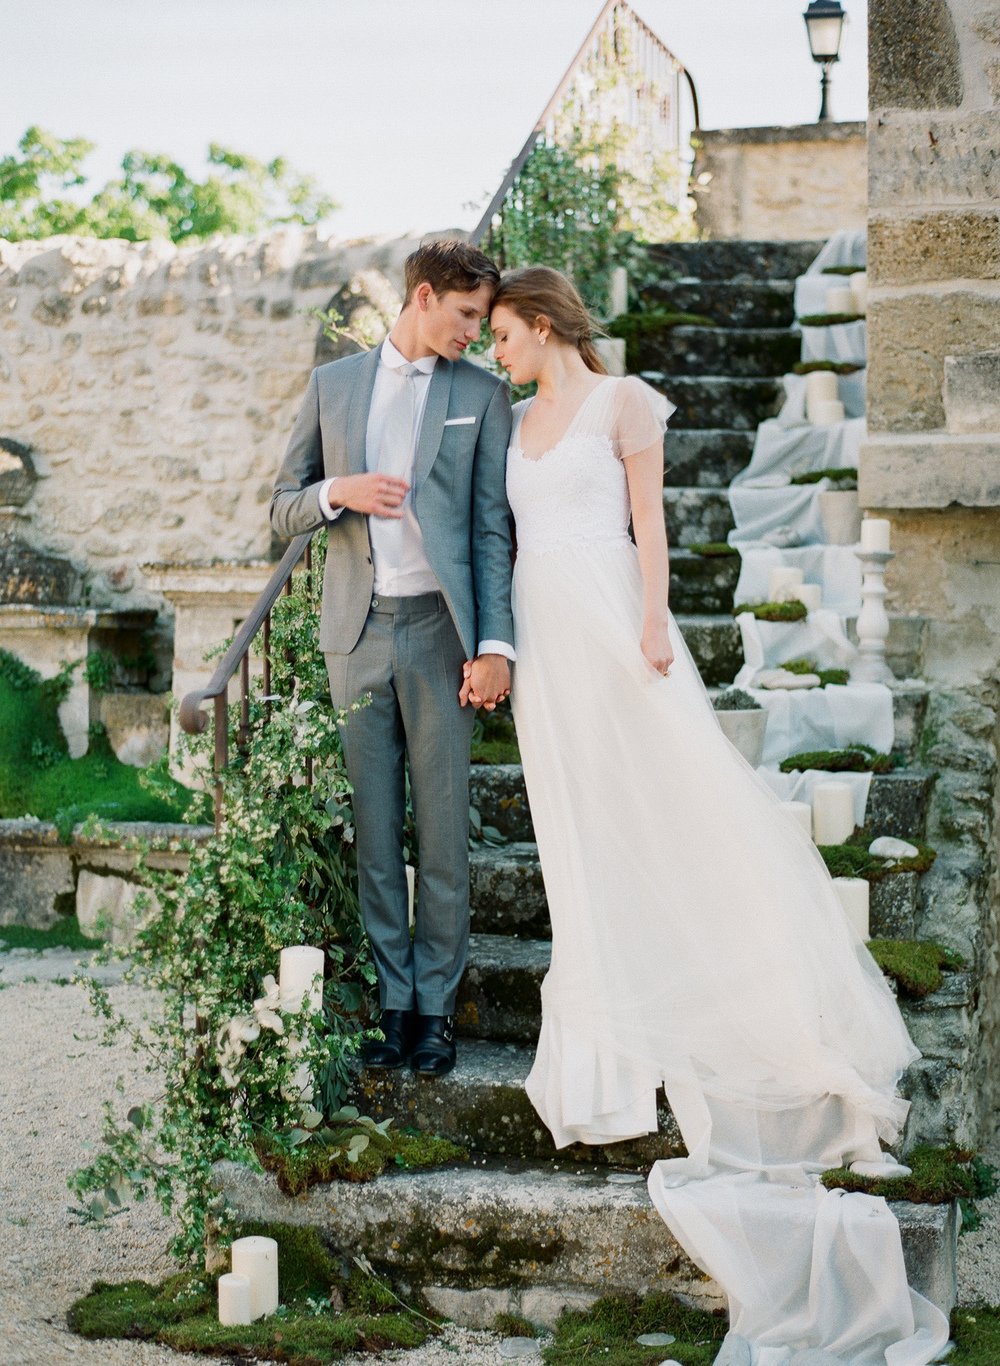 Courtney_Elizabeth_Media_France_Elopement_Light_Workshop-010.jpg